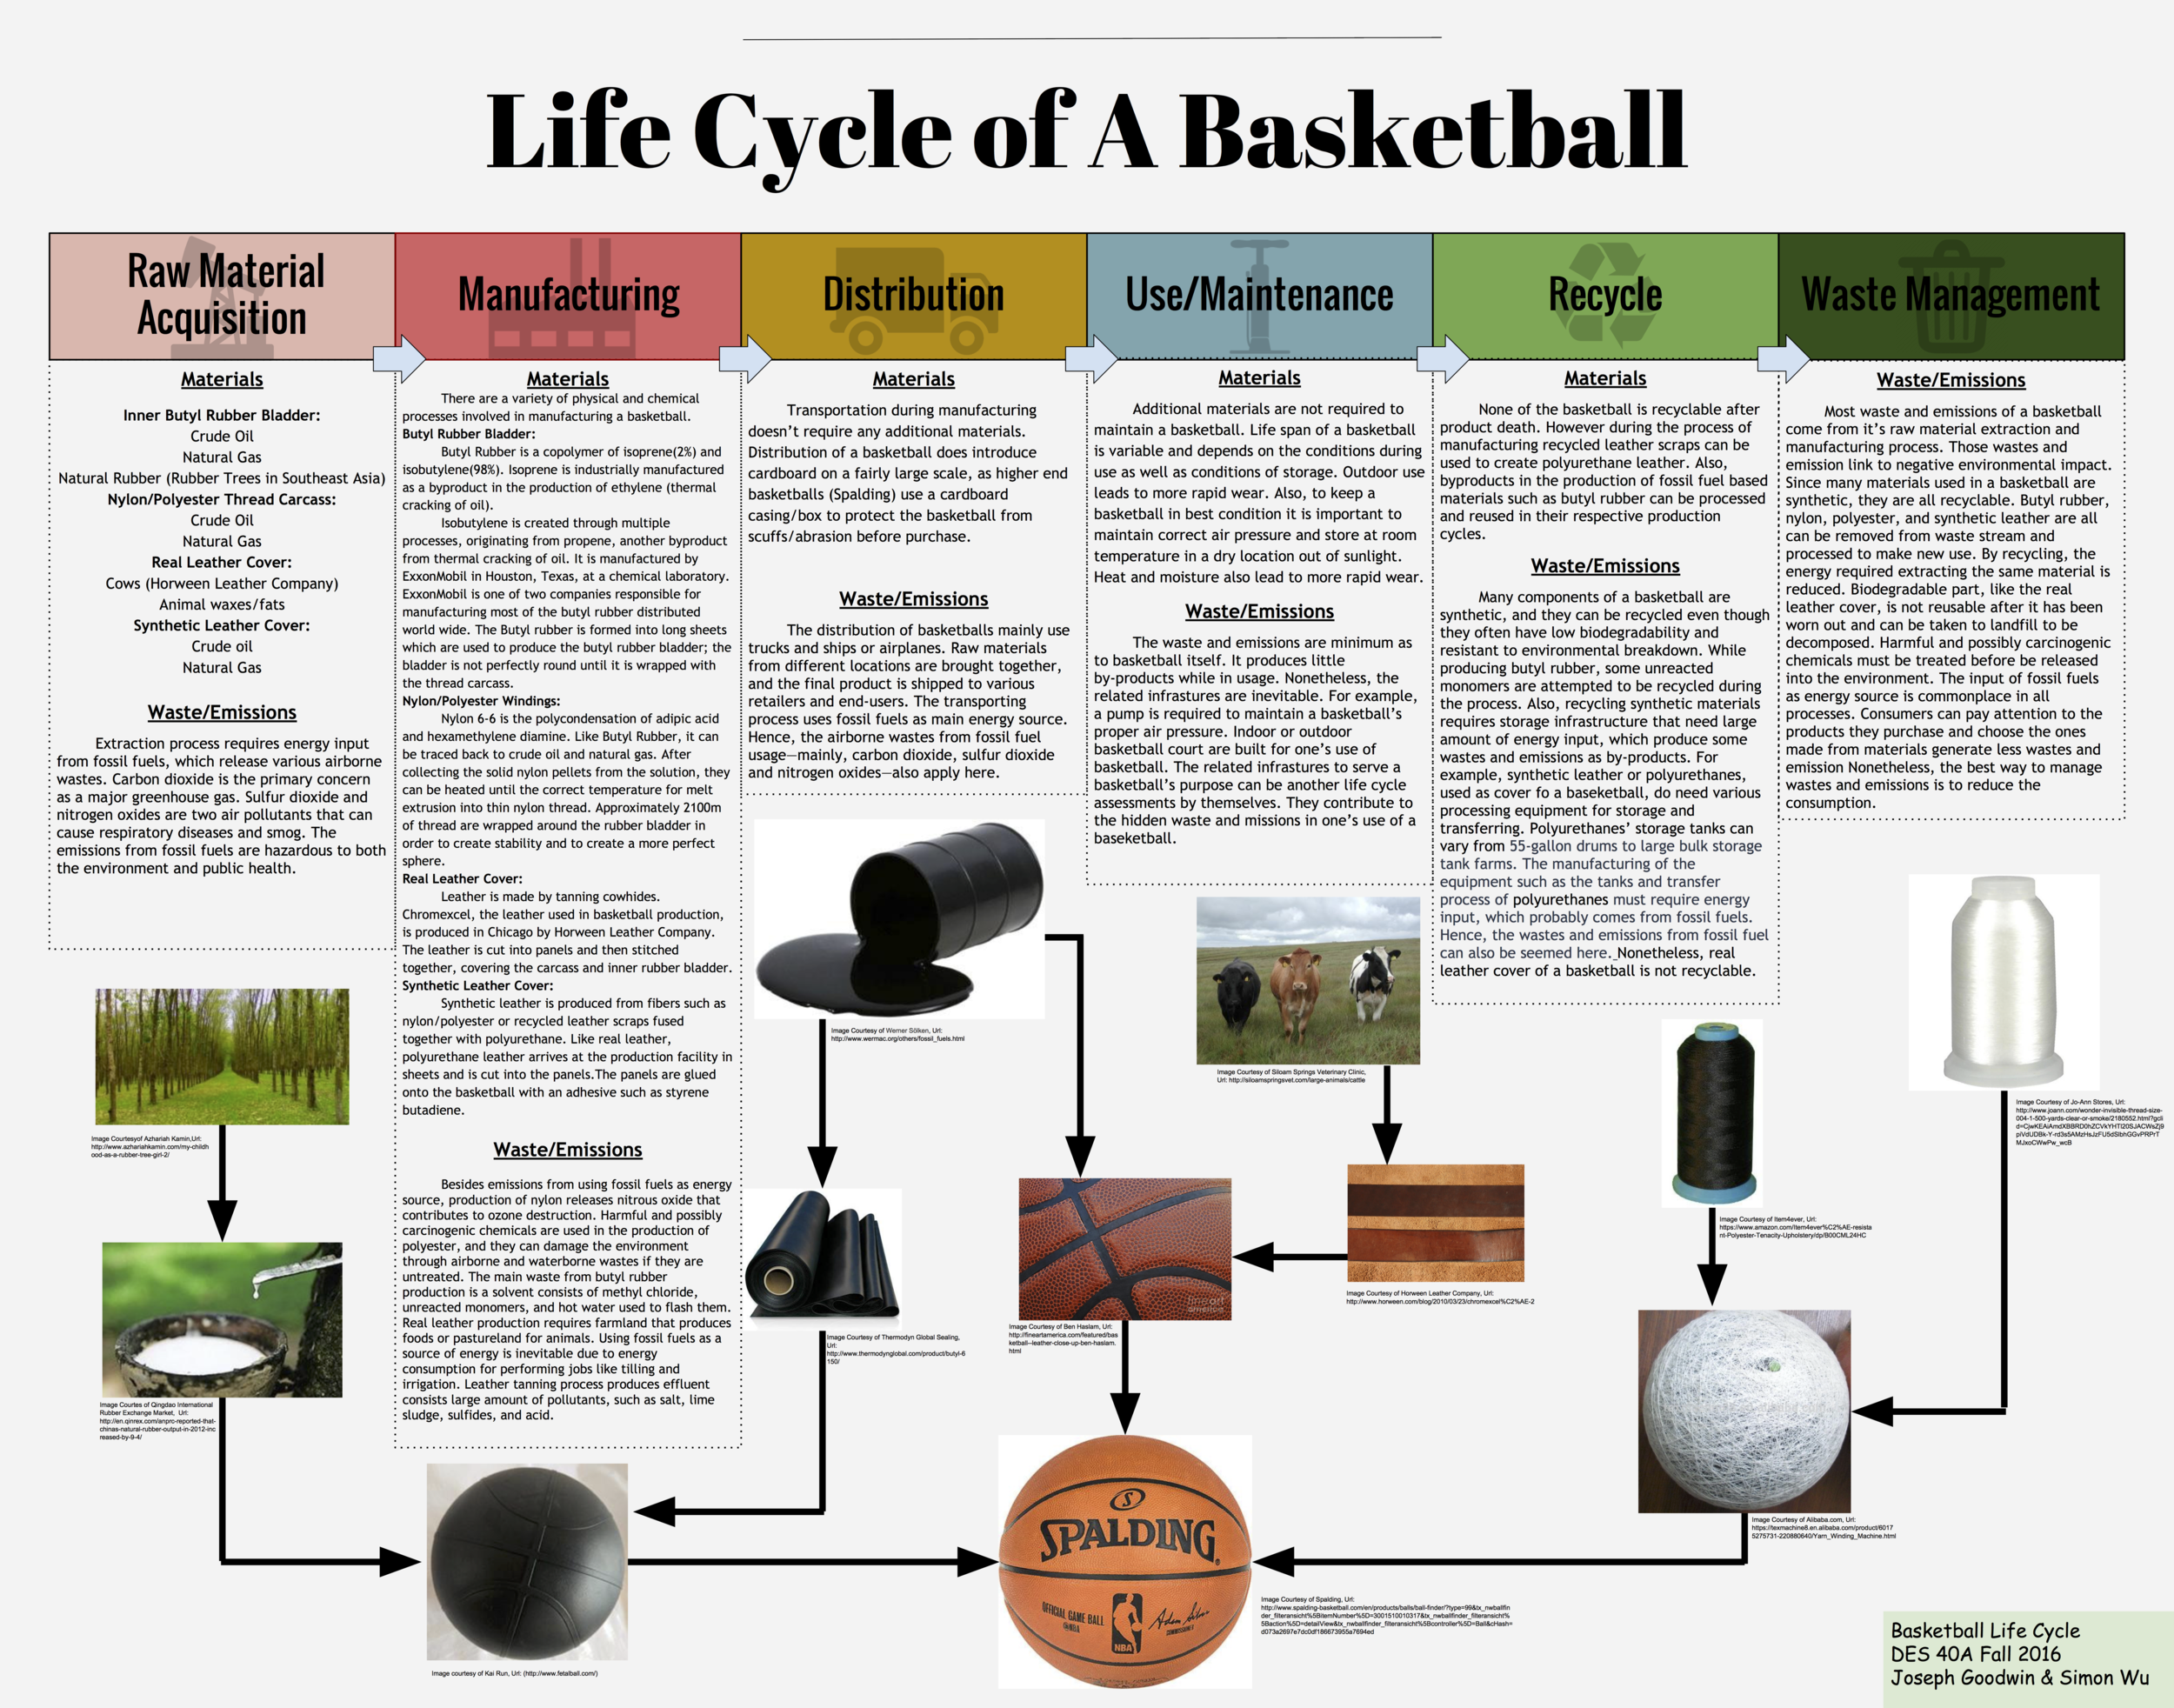 Joseph Goodwin    Professor Christina Cogdell    Design 40A     1 December 2016    Life Cycle Analysis: Materials of a Basketball    Over the past few years basketball has begun to rapidly grow in popularity. It's a fast paced game that can be exhilarating to watch, but few people consider the materials used to create the basis of the sport; the basketball. The modern basketball has 3 main components; a rubber bladder, a leather/composite cover, and a nylon/polyester carcass. Recreational balls have a synthetic leather or polyurethane leather cover while professional ones are made with real leather. The material chosen does change the properties the ball exhibits during use. For example a leather ball will bounce higher than a synthetic leather one, but the synthetic leather one is far less slippery. For manufacturing purposes, synthetic leather basketballs have replaced leather in order to keep costs low and profits high. One brand of basketball I will be referencing is Spalding, as they are the brand that produces the ball for professional play (NBA) as well as many different recreational versions. I will first examine each component of a basketball separately to isolate the raw materials acquisition as well as the manufacturing/processing required to get to the production of a basketball, as this is where a majority of the materials aspects of a basketball's lifecycle is focused. I will then touch on both the use of a basketball as well as the end of its life cycle. A simple product like a basketball may not contain many different material components, but further examination of its lifecycle reveals the extensive story behind the materials that create an iconic product.        The rubber bladder is by far the most consistently manufactured part of a basketball in terms of materials used. Almost all basketballs have a butyl rubber/natural rubber bladder. Butyl rubber is ideal because of its high impermeability to air which allows it to hold air without losing any 